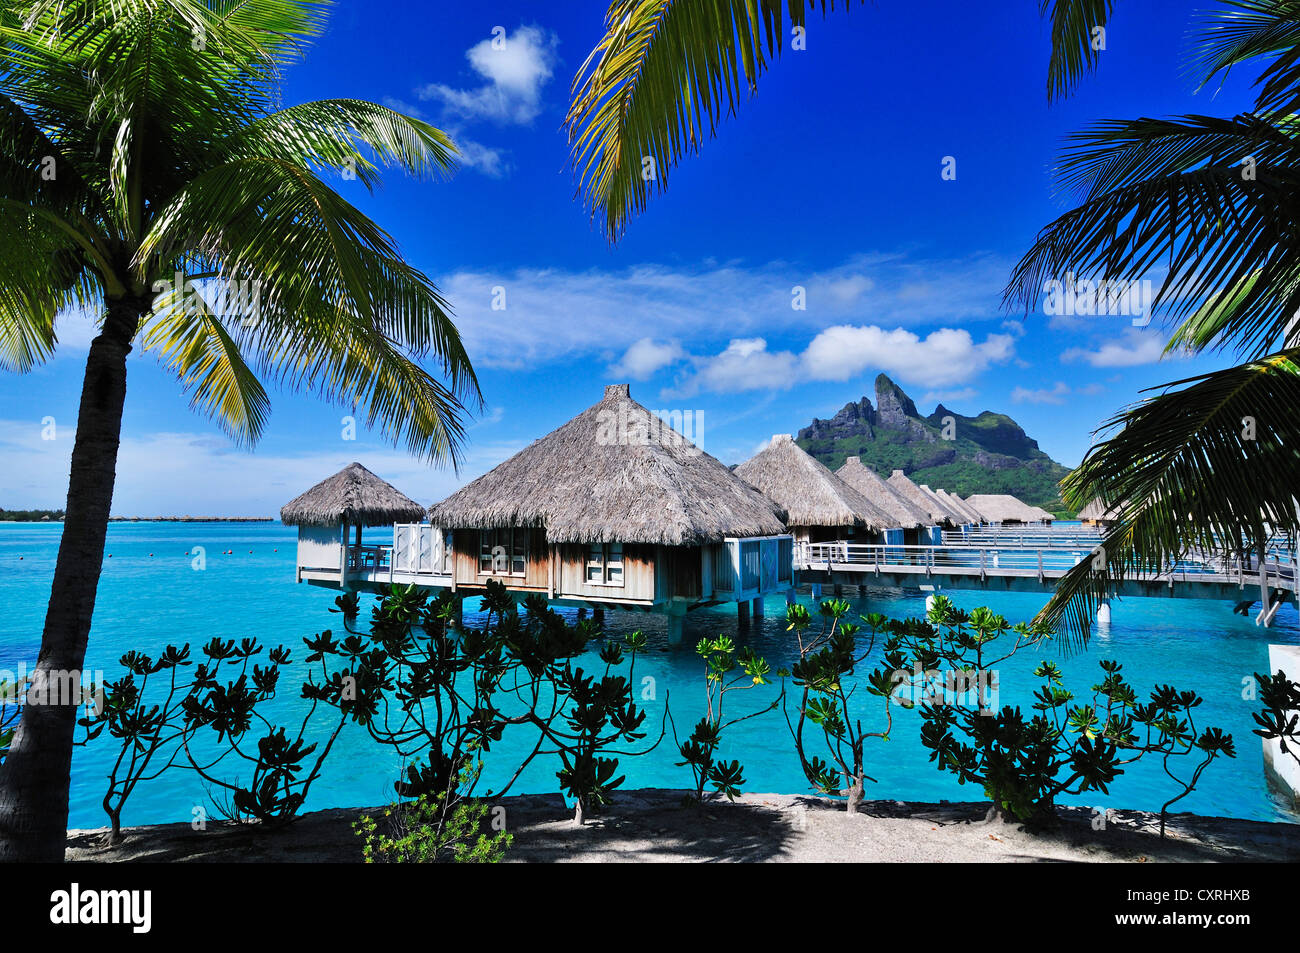 St regis bora bora resort bora bora leeward islands for What to buy in bora bora